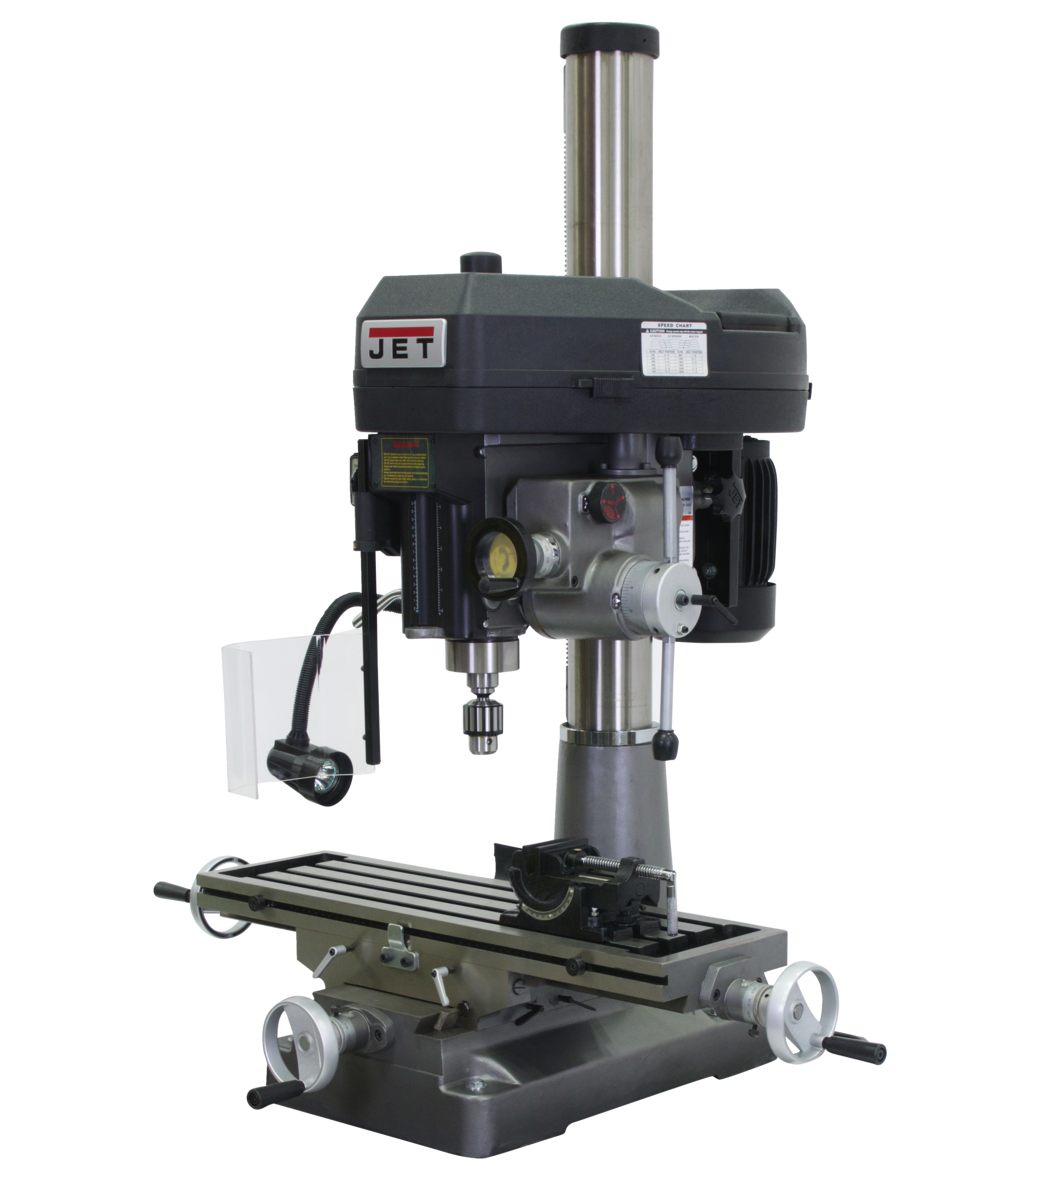 JMD-18PFN Mill/Drill With ACU-RITE 203  DRO and X-Axis Table Powerfeed